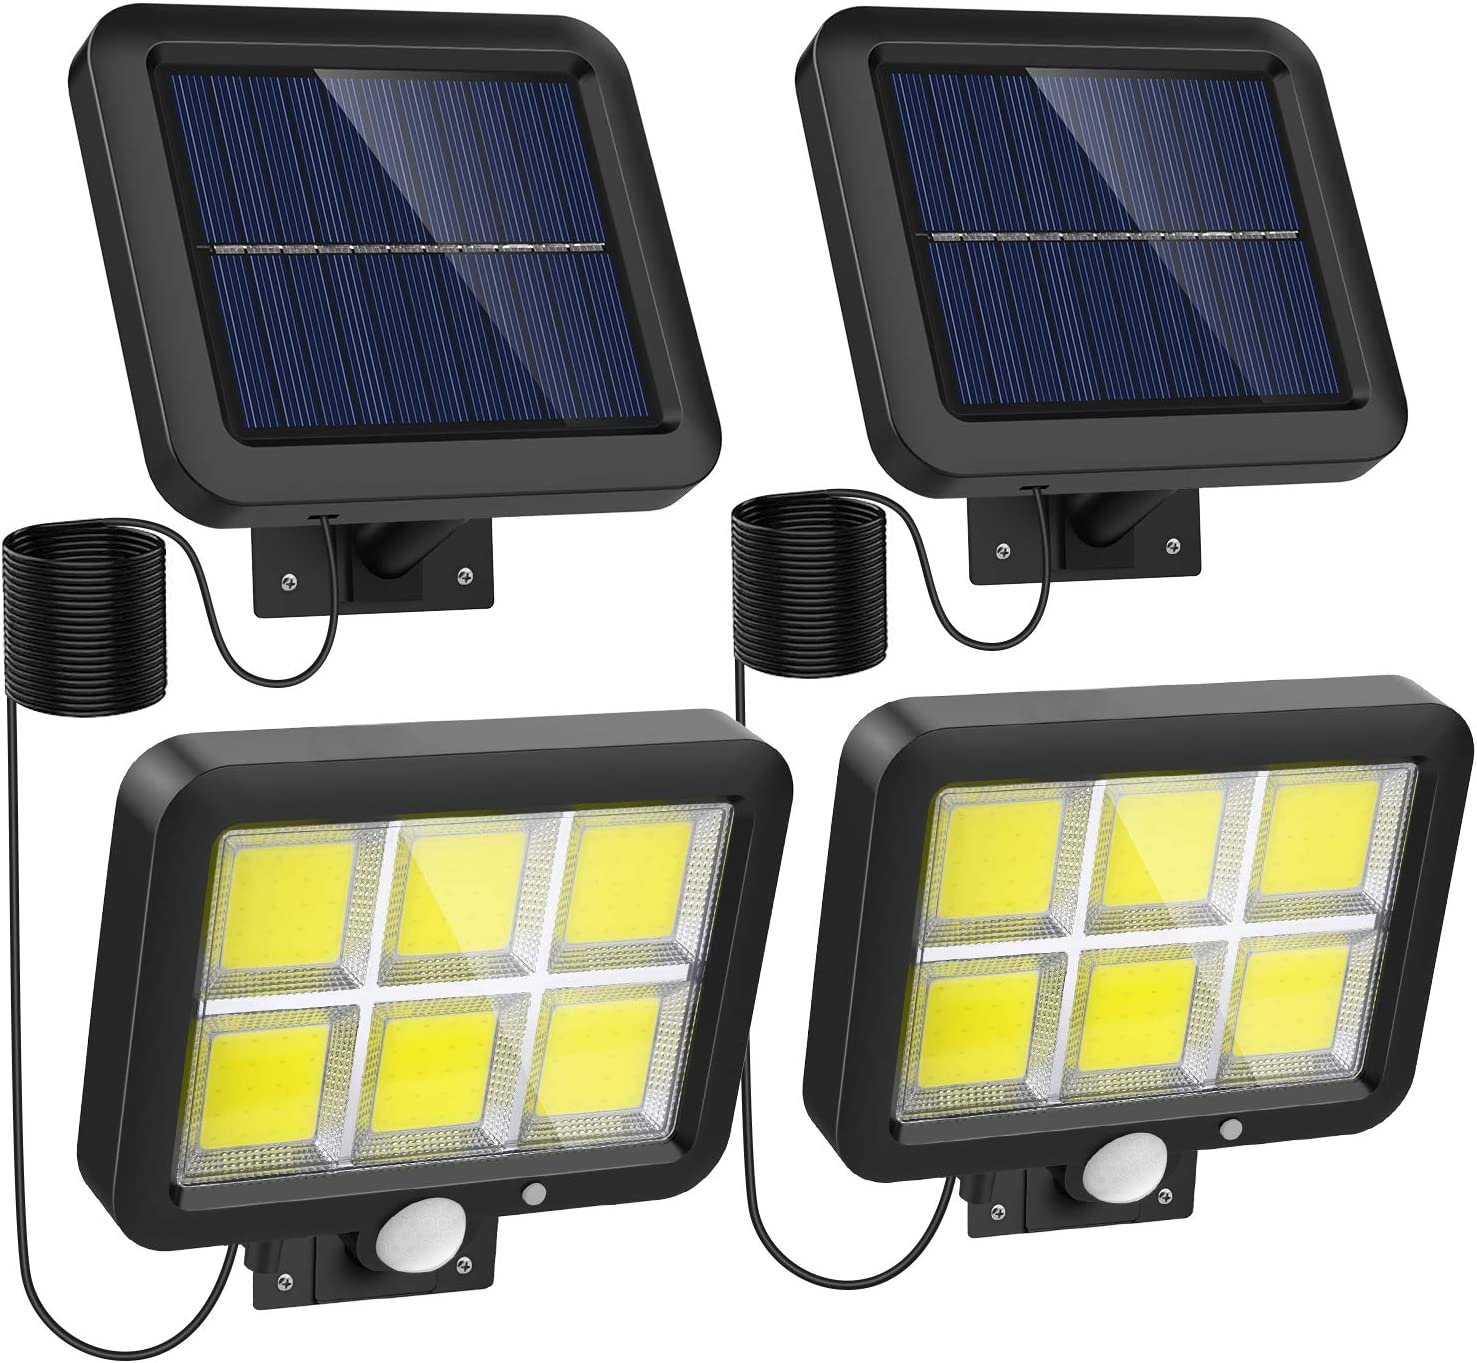 Solar Lights Outdoor Motion Sensor w/ 240 Bright COB LED, 16.4Ft Cable, 3 Lighting Modes, Adjustable Solar Panel. Wired Security Solar Powered Flood Lights for Indoor & Outside Yard(5500K, 2 Pack)